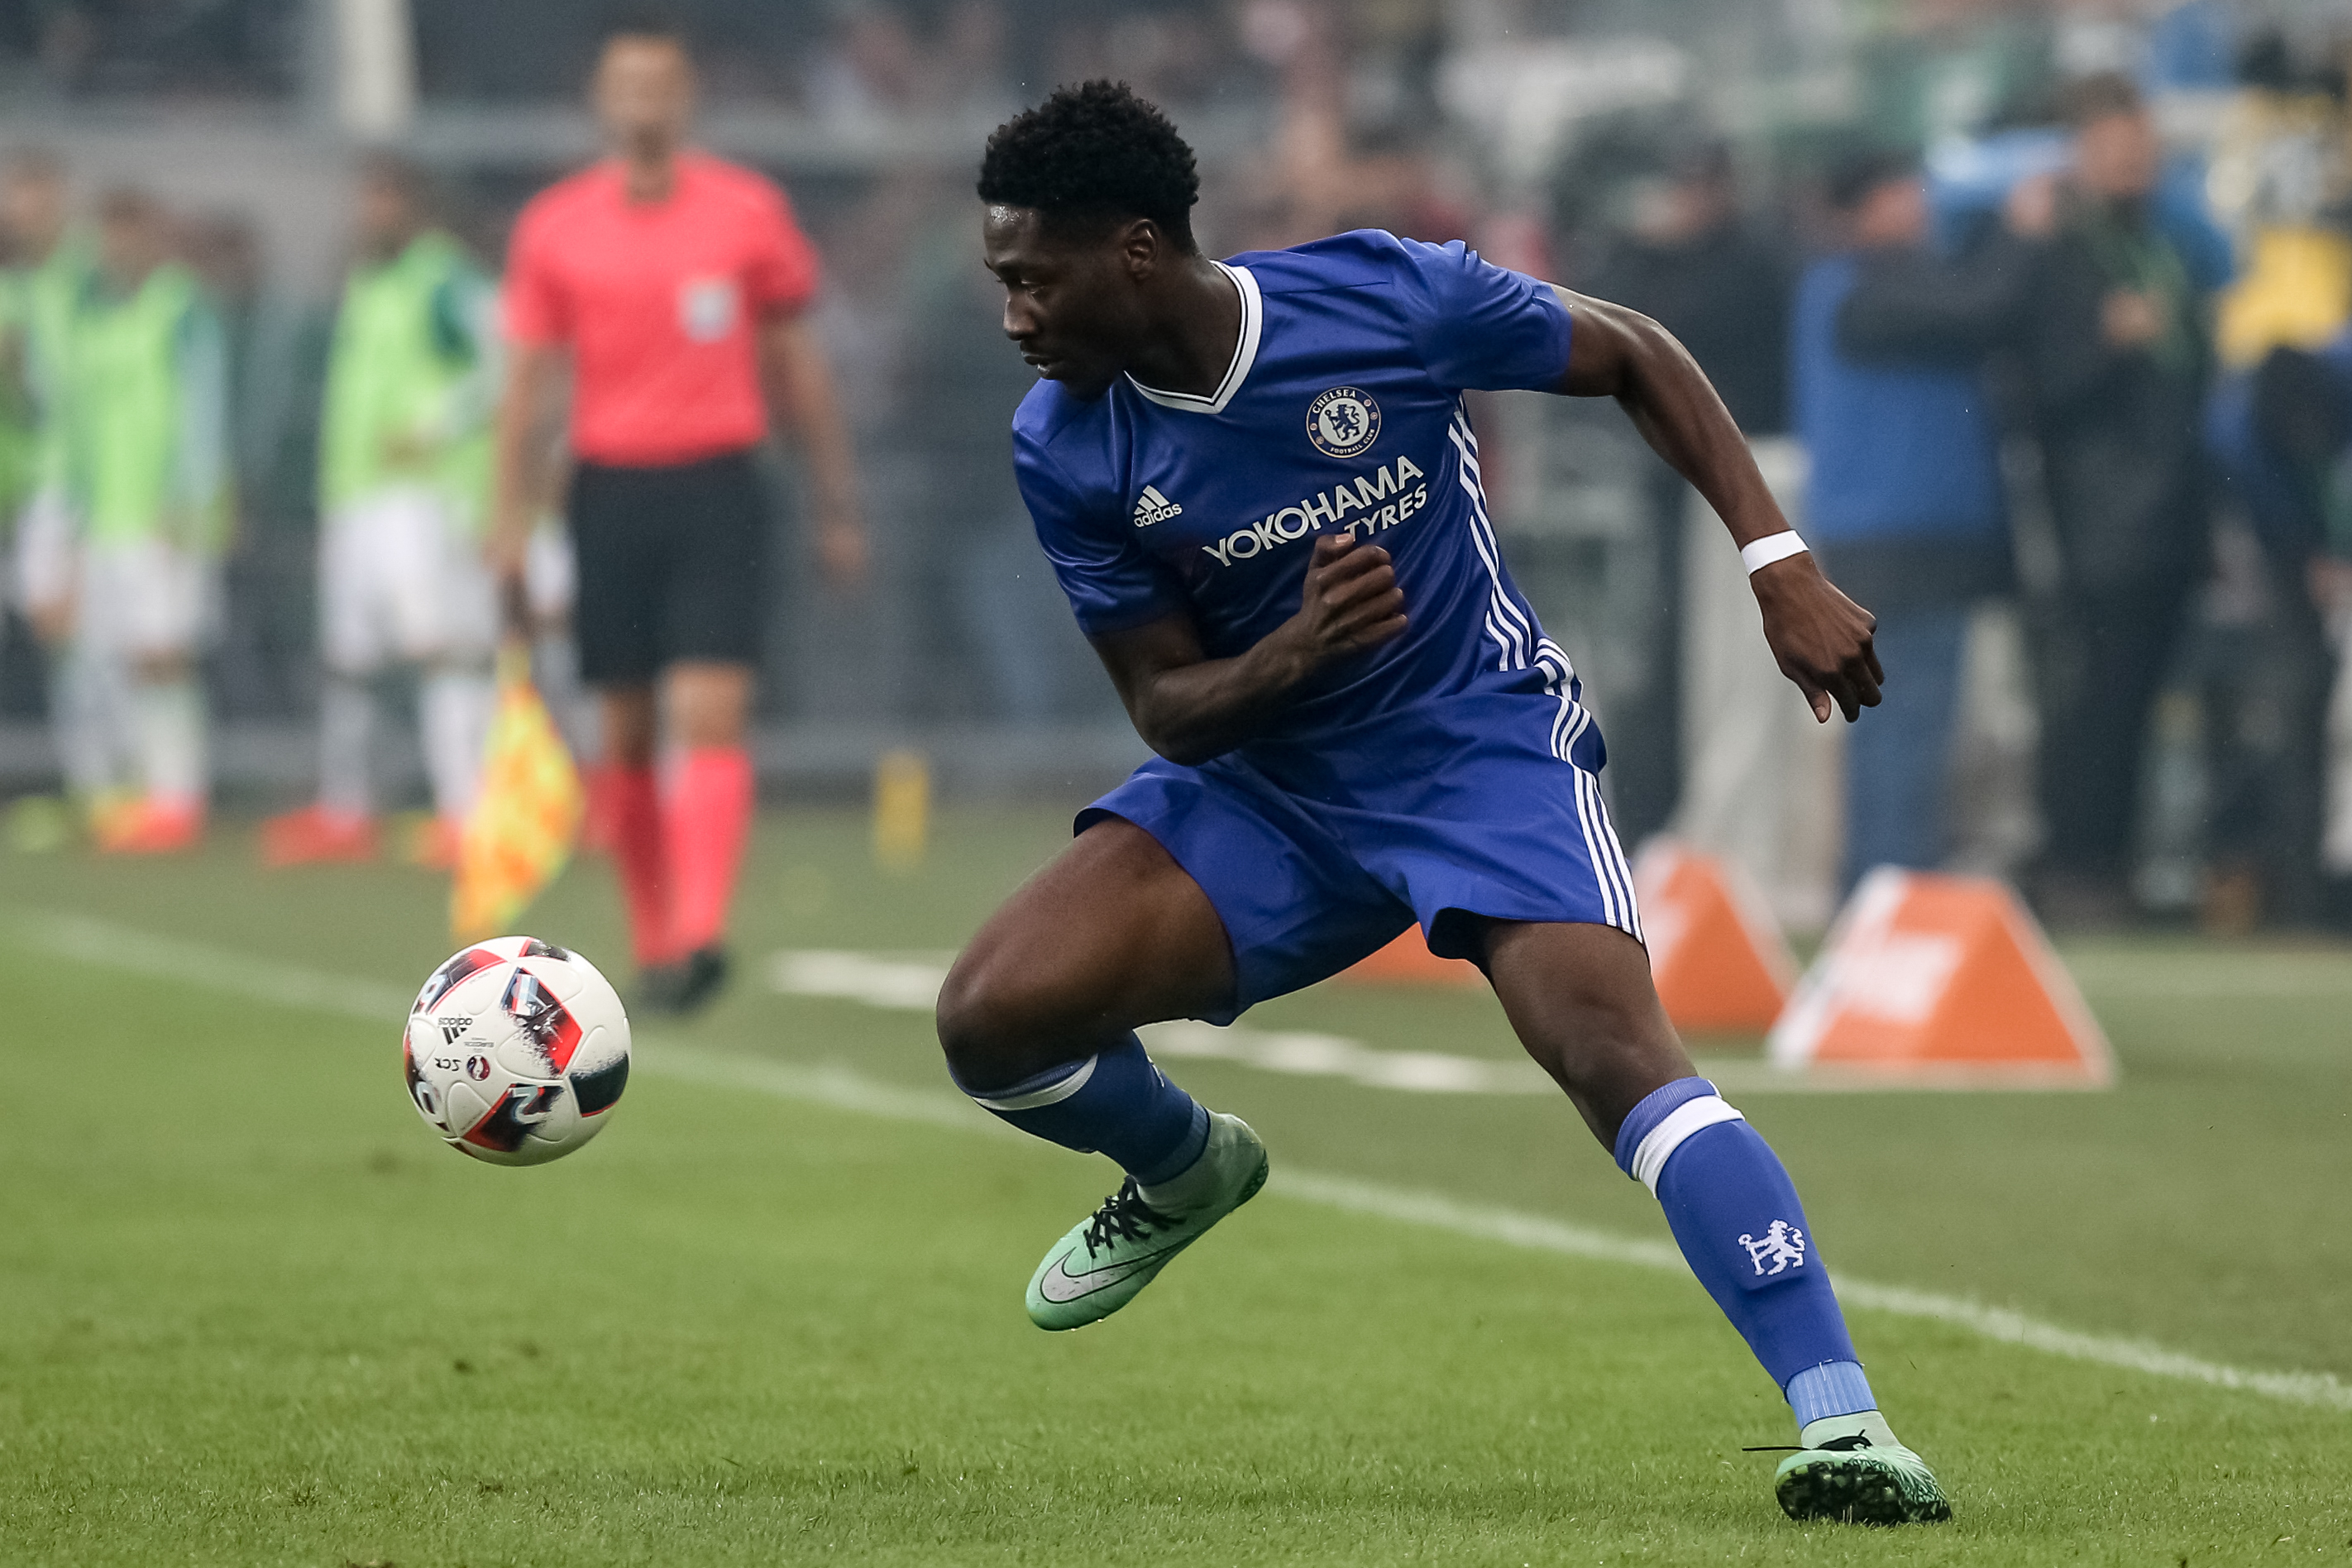 VIENNA, AUSTRIA - JULY 16: Ola Aina of Chelsea in action during an friendly match between SK Rapid Vienna and Chelsea F.C. at Allianz Stadion on July 16, 2016 in Vienna, Austria. (Photo by Matej Divizna/Getty Images)